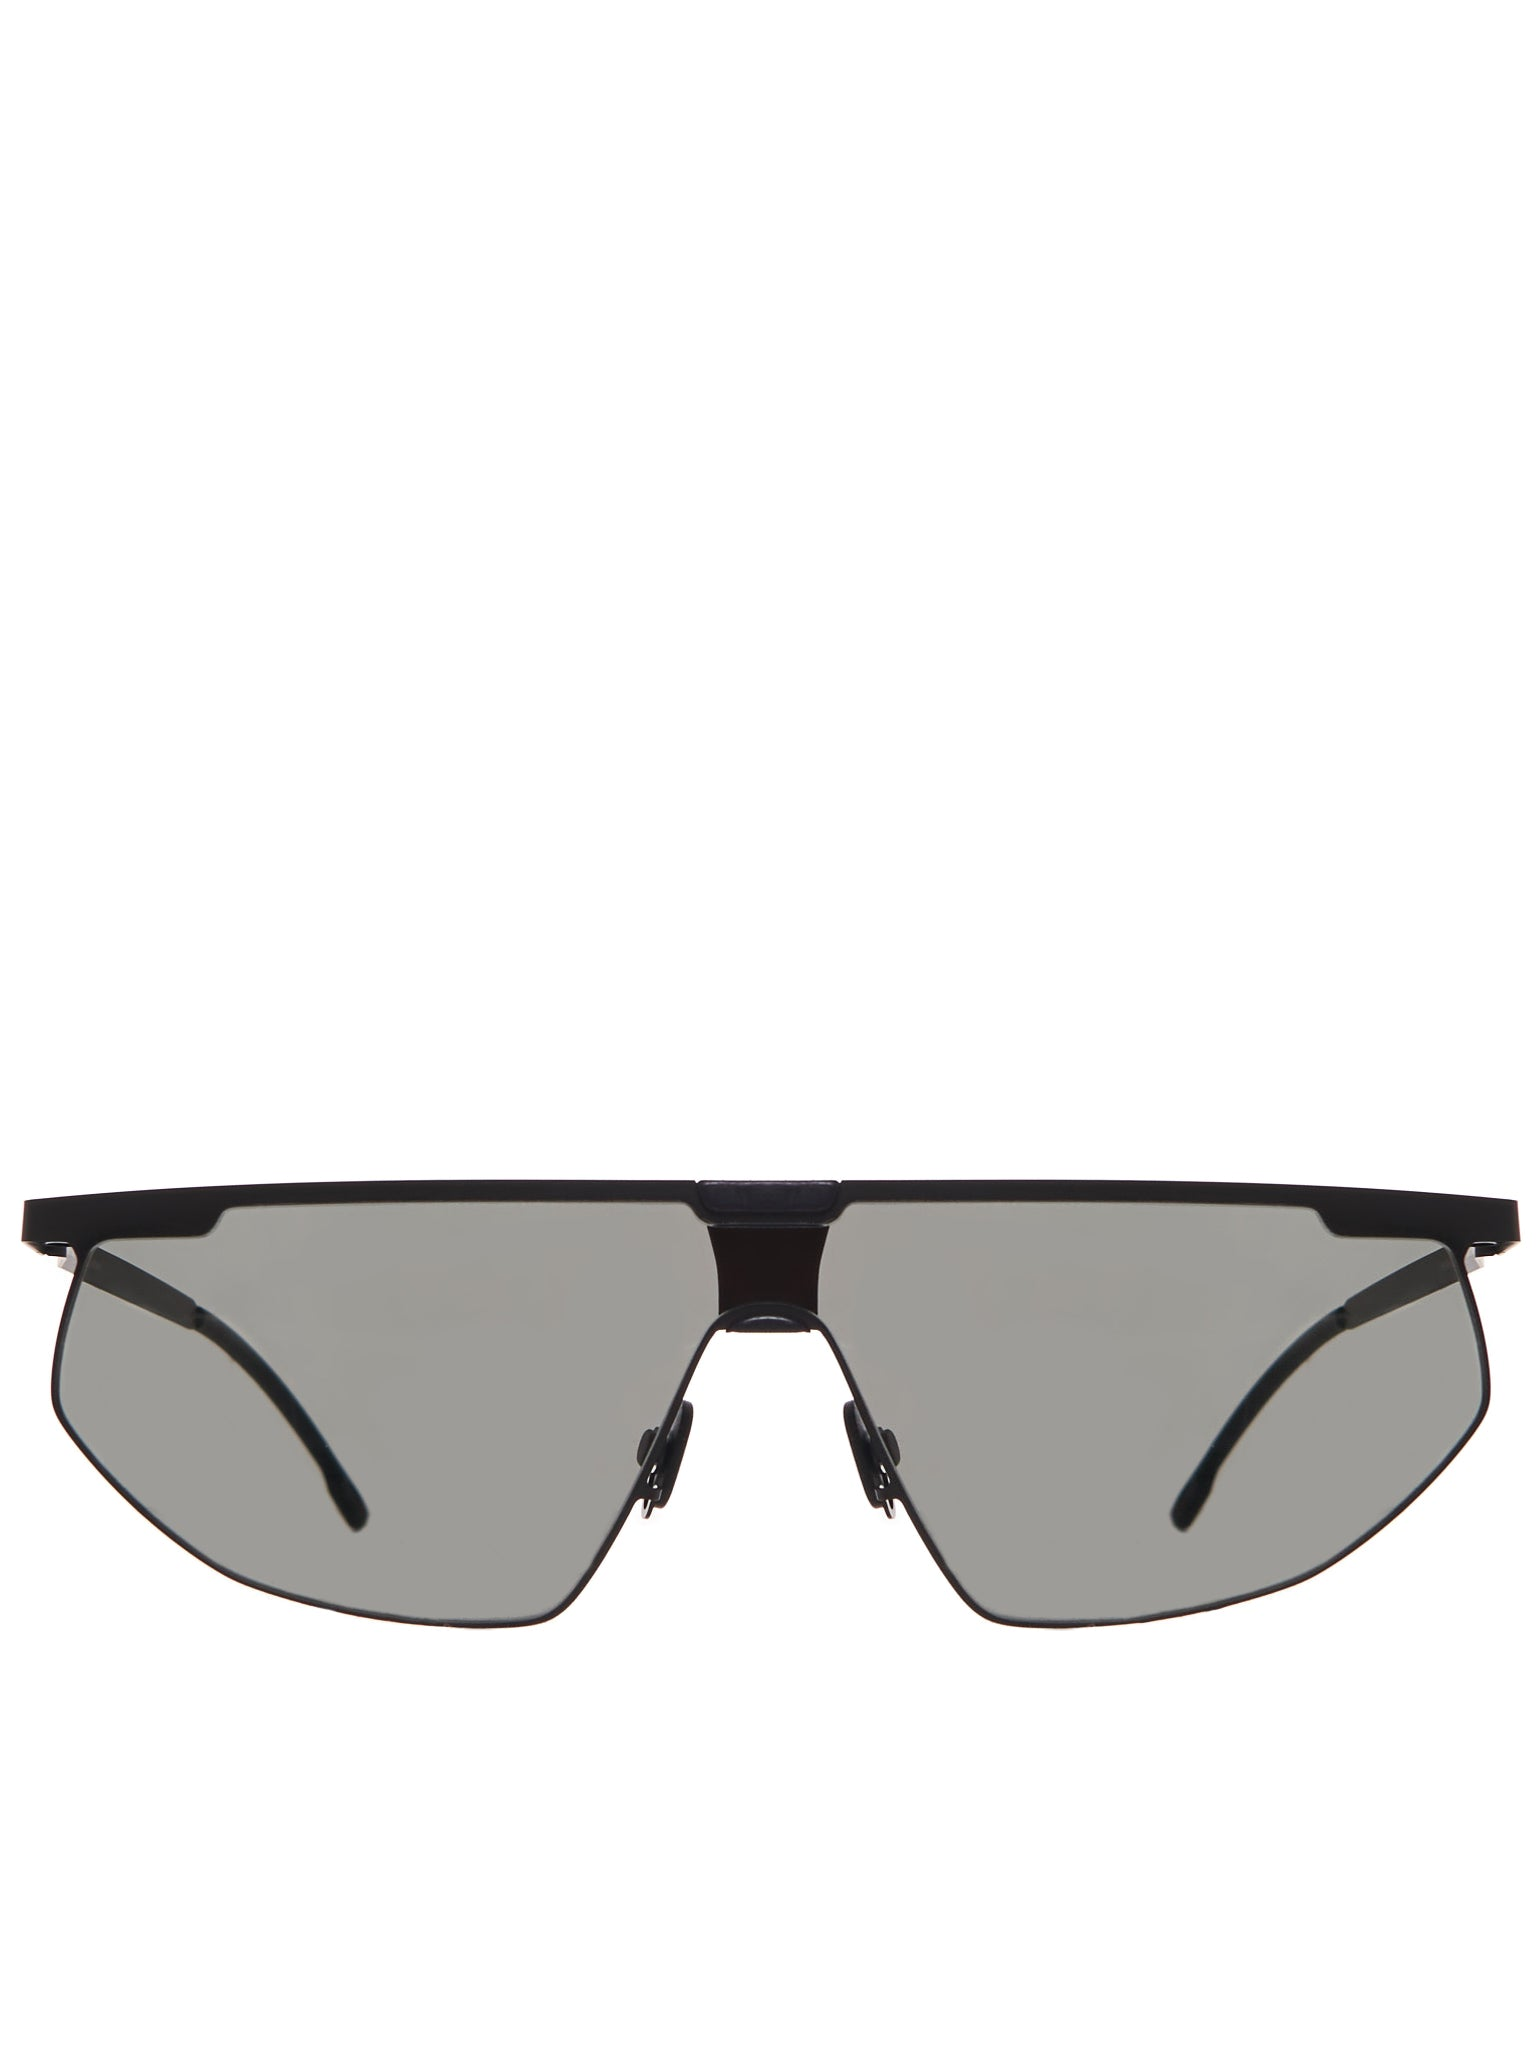 Shield Sunglasses (PARIS-MH1-BLACK-DARKGREY-SOLID)